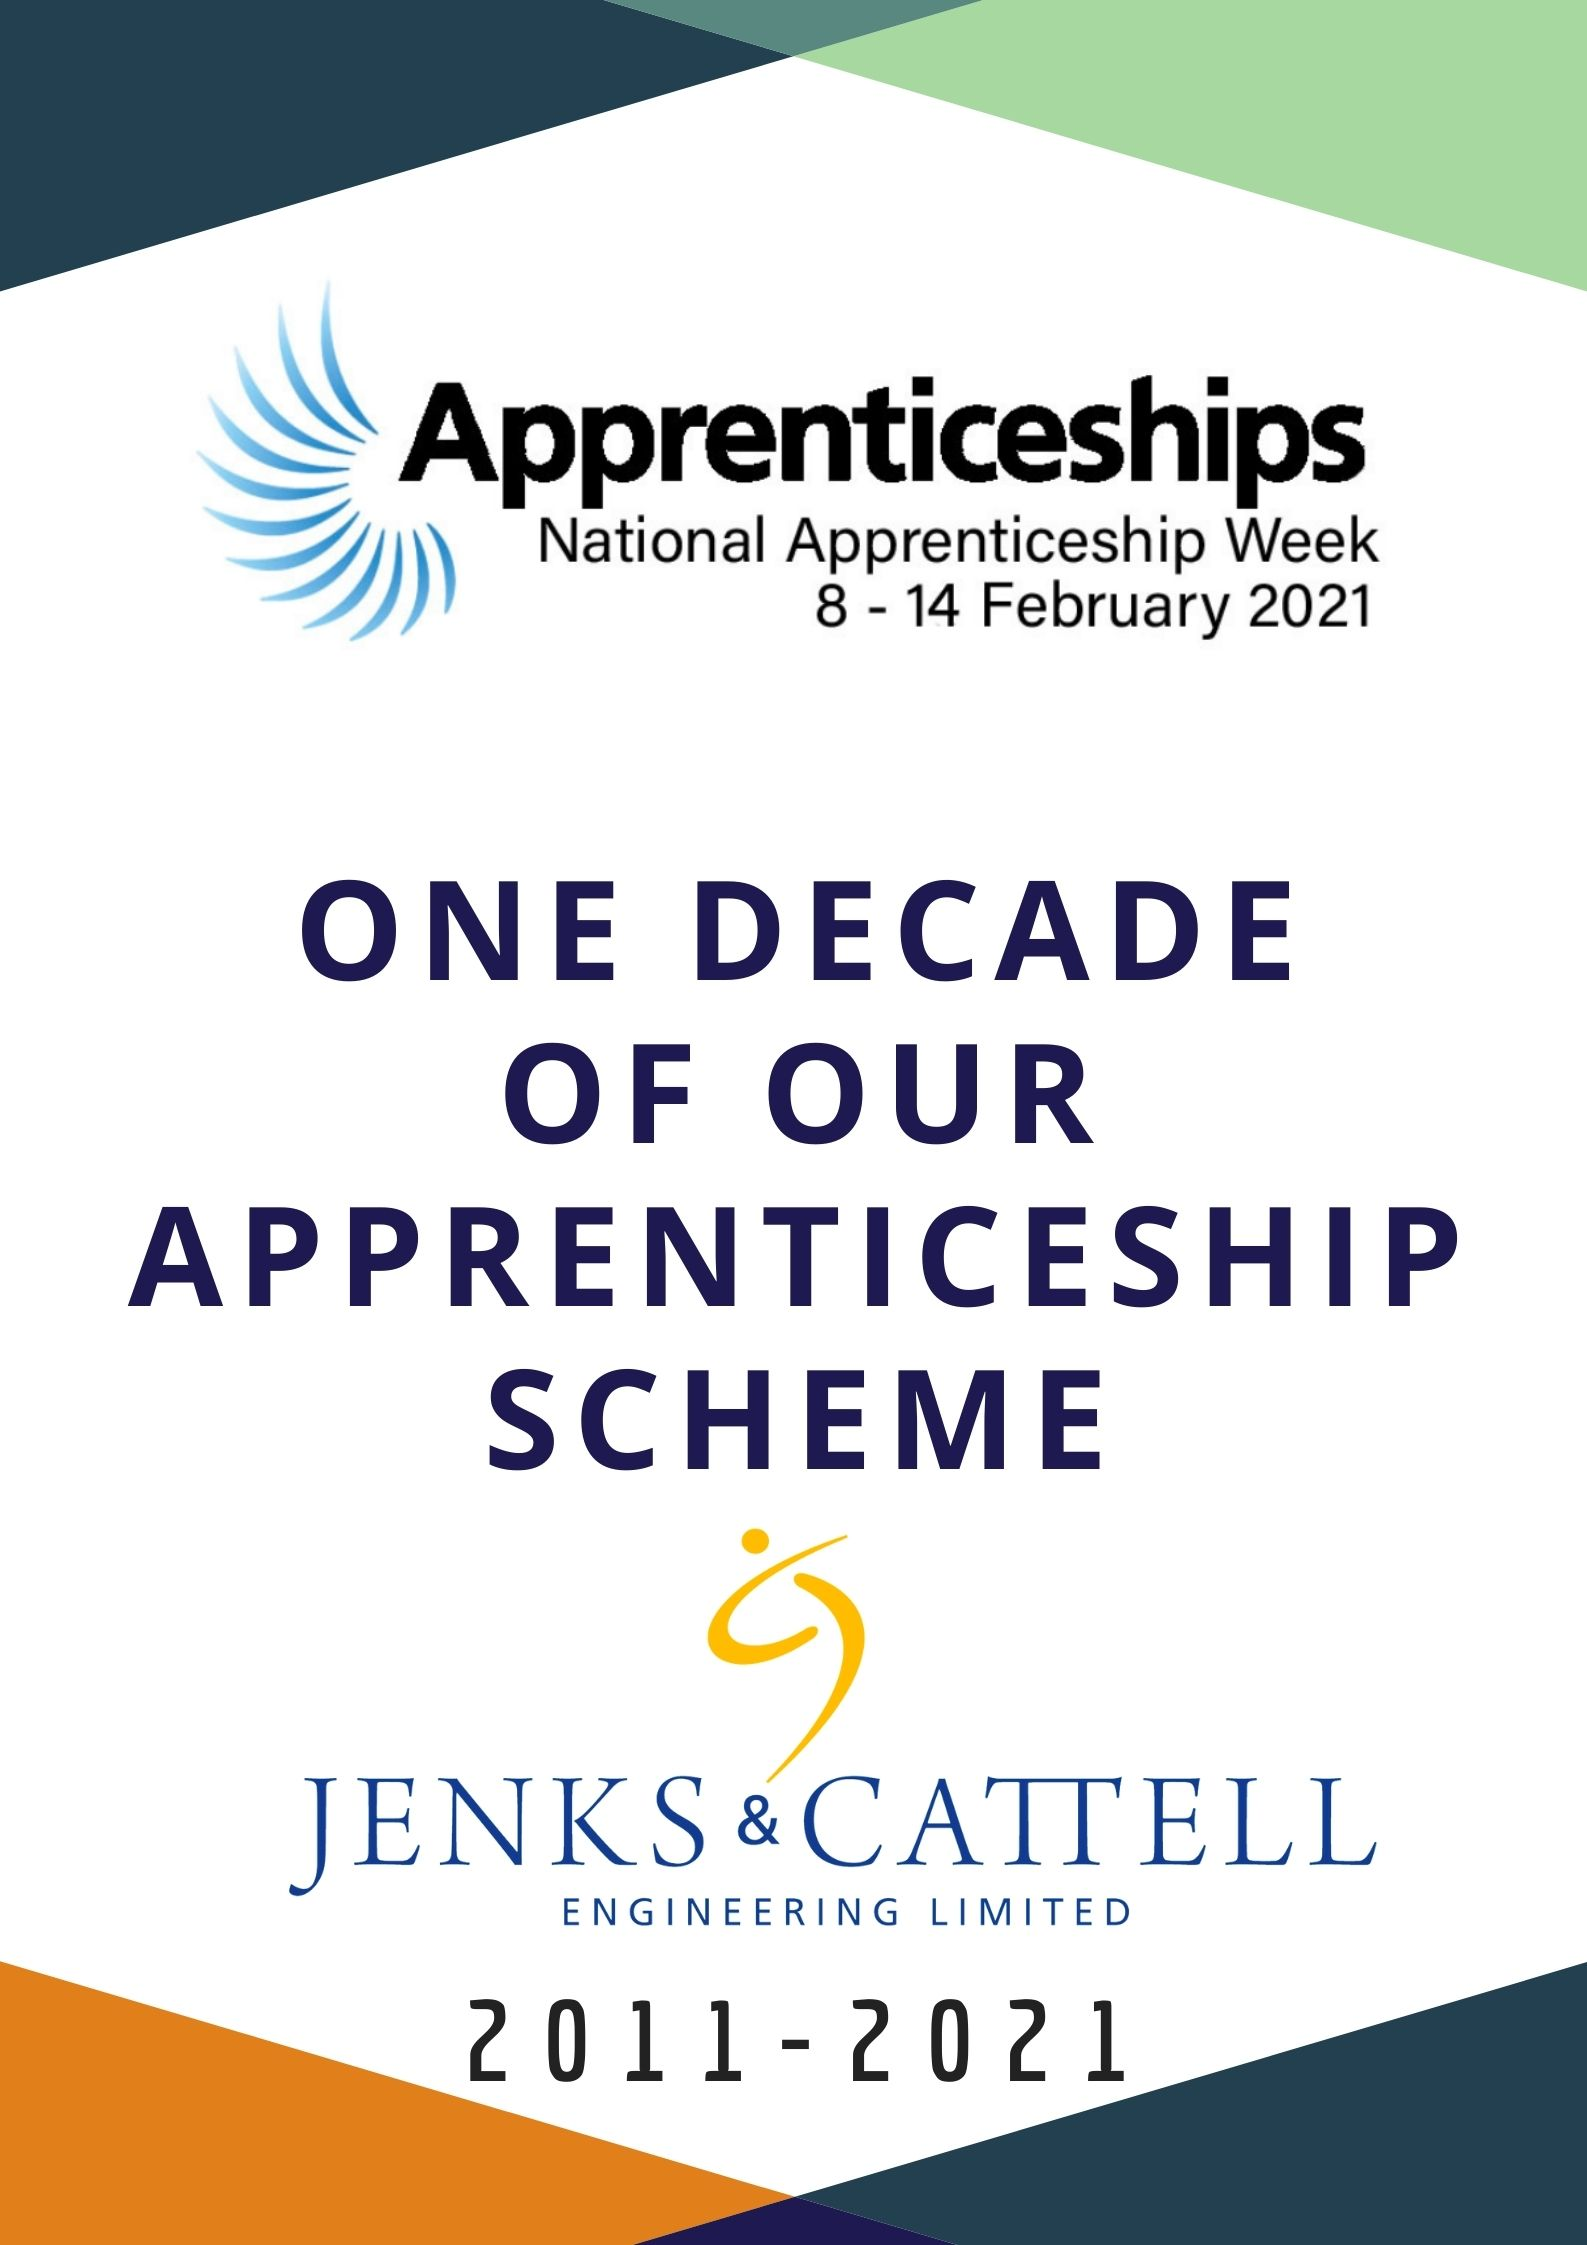 Jenks & Cattell A Decade of Apprenticeships to Celebrate National Apprenticeship Week